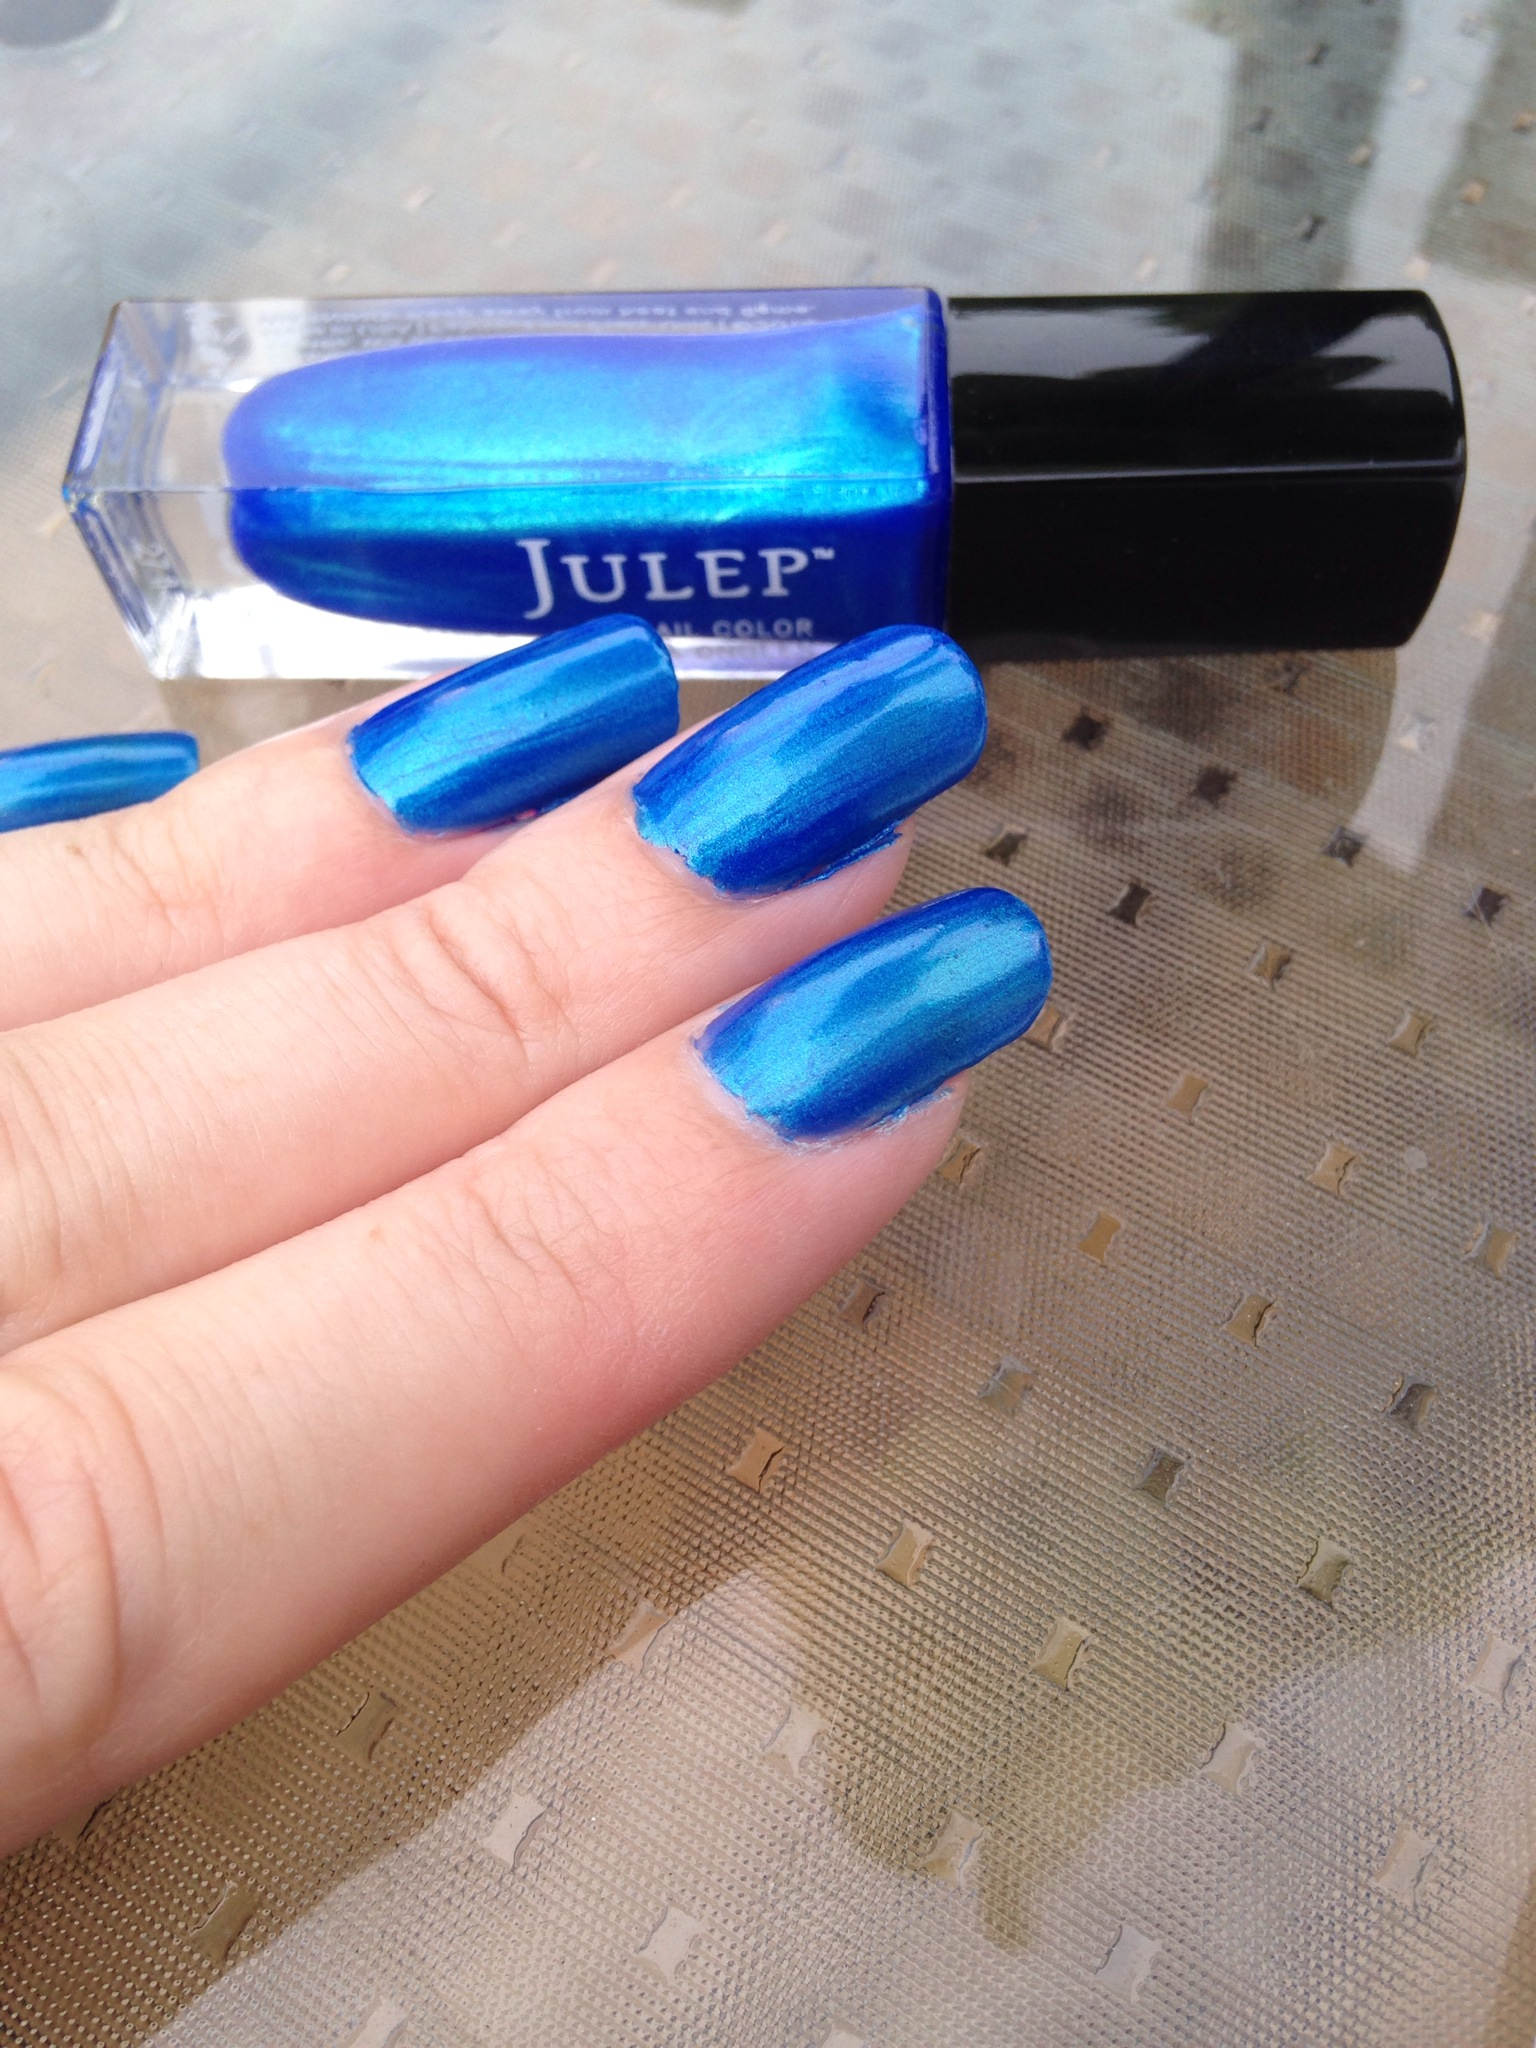 Julep nail polish reviews – Karalust